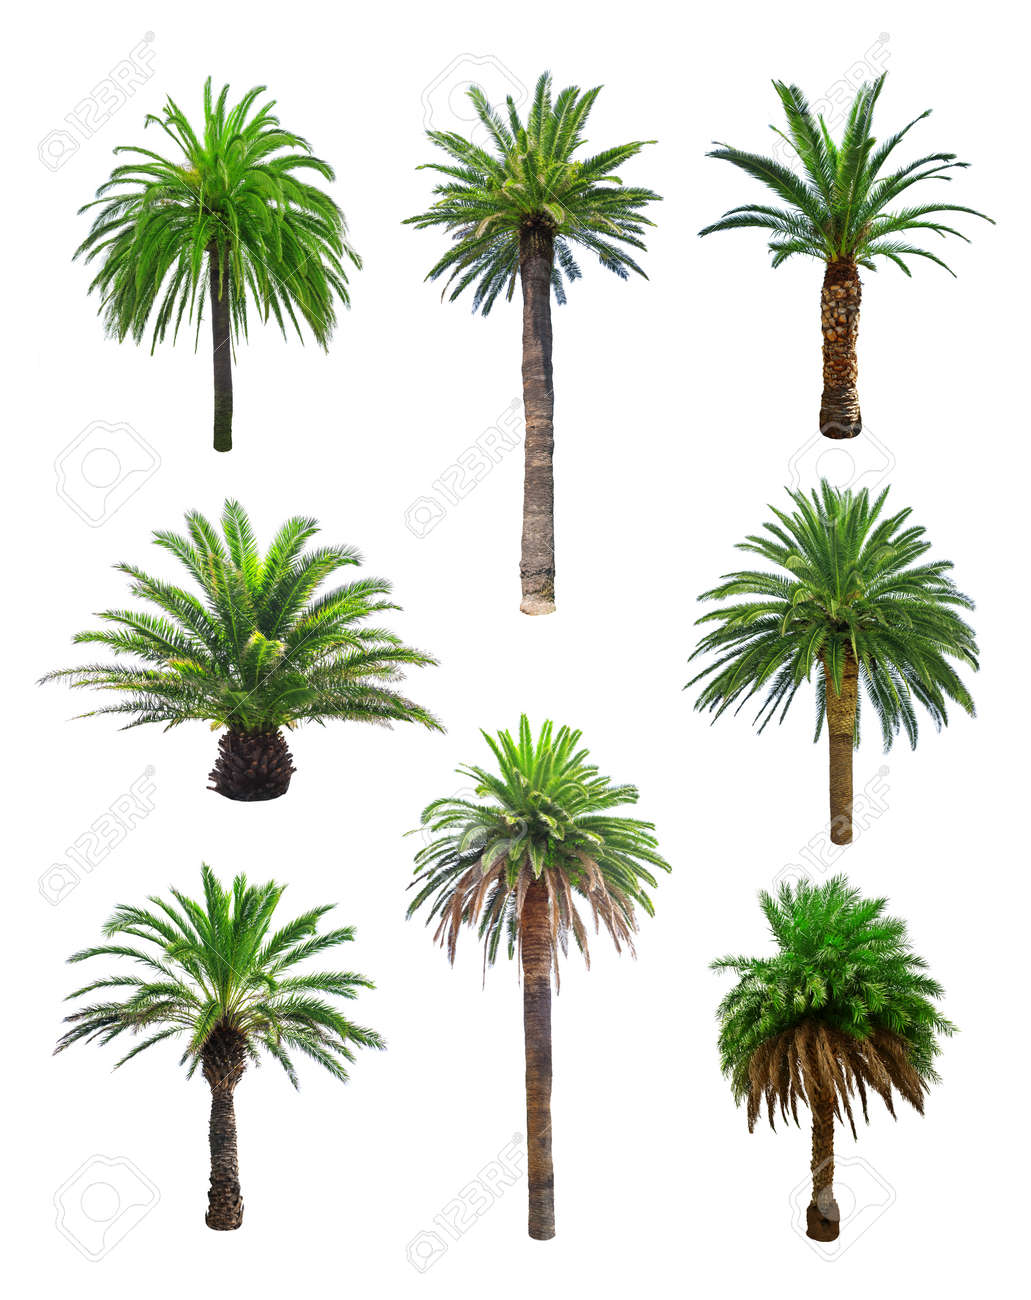 palm tree isolated on white Standard-Bild - 31733743